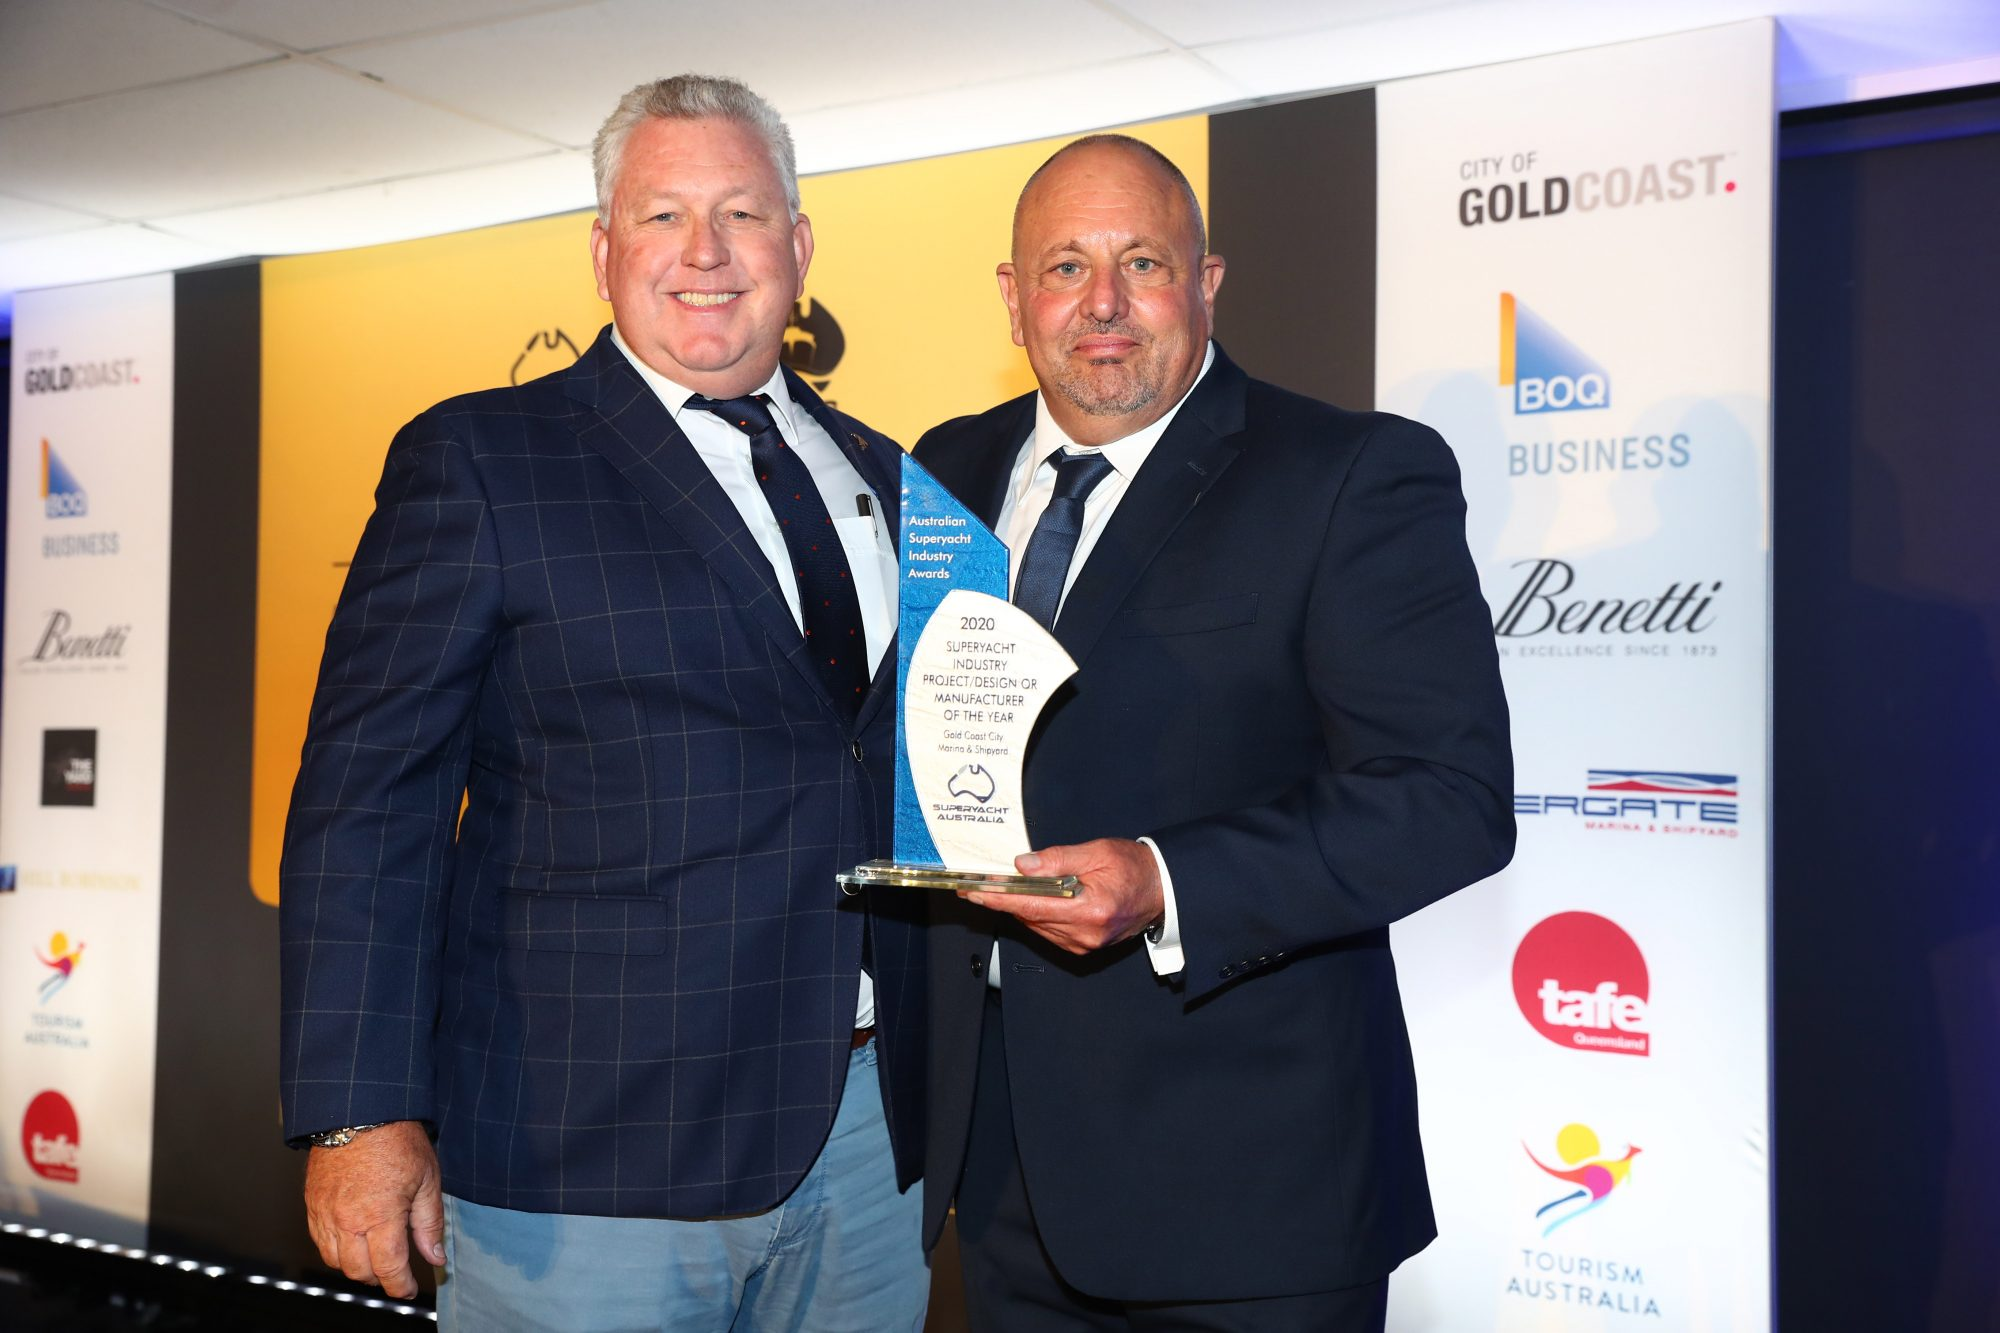 6. Trenton Gay and Kevin Altera – Gold Coast City Marina and Shipyard – Project Design or Manufacturer of the Year Winner